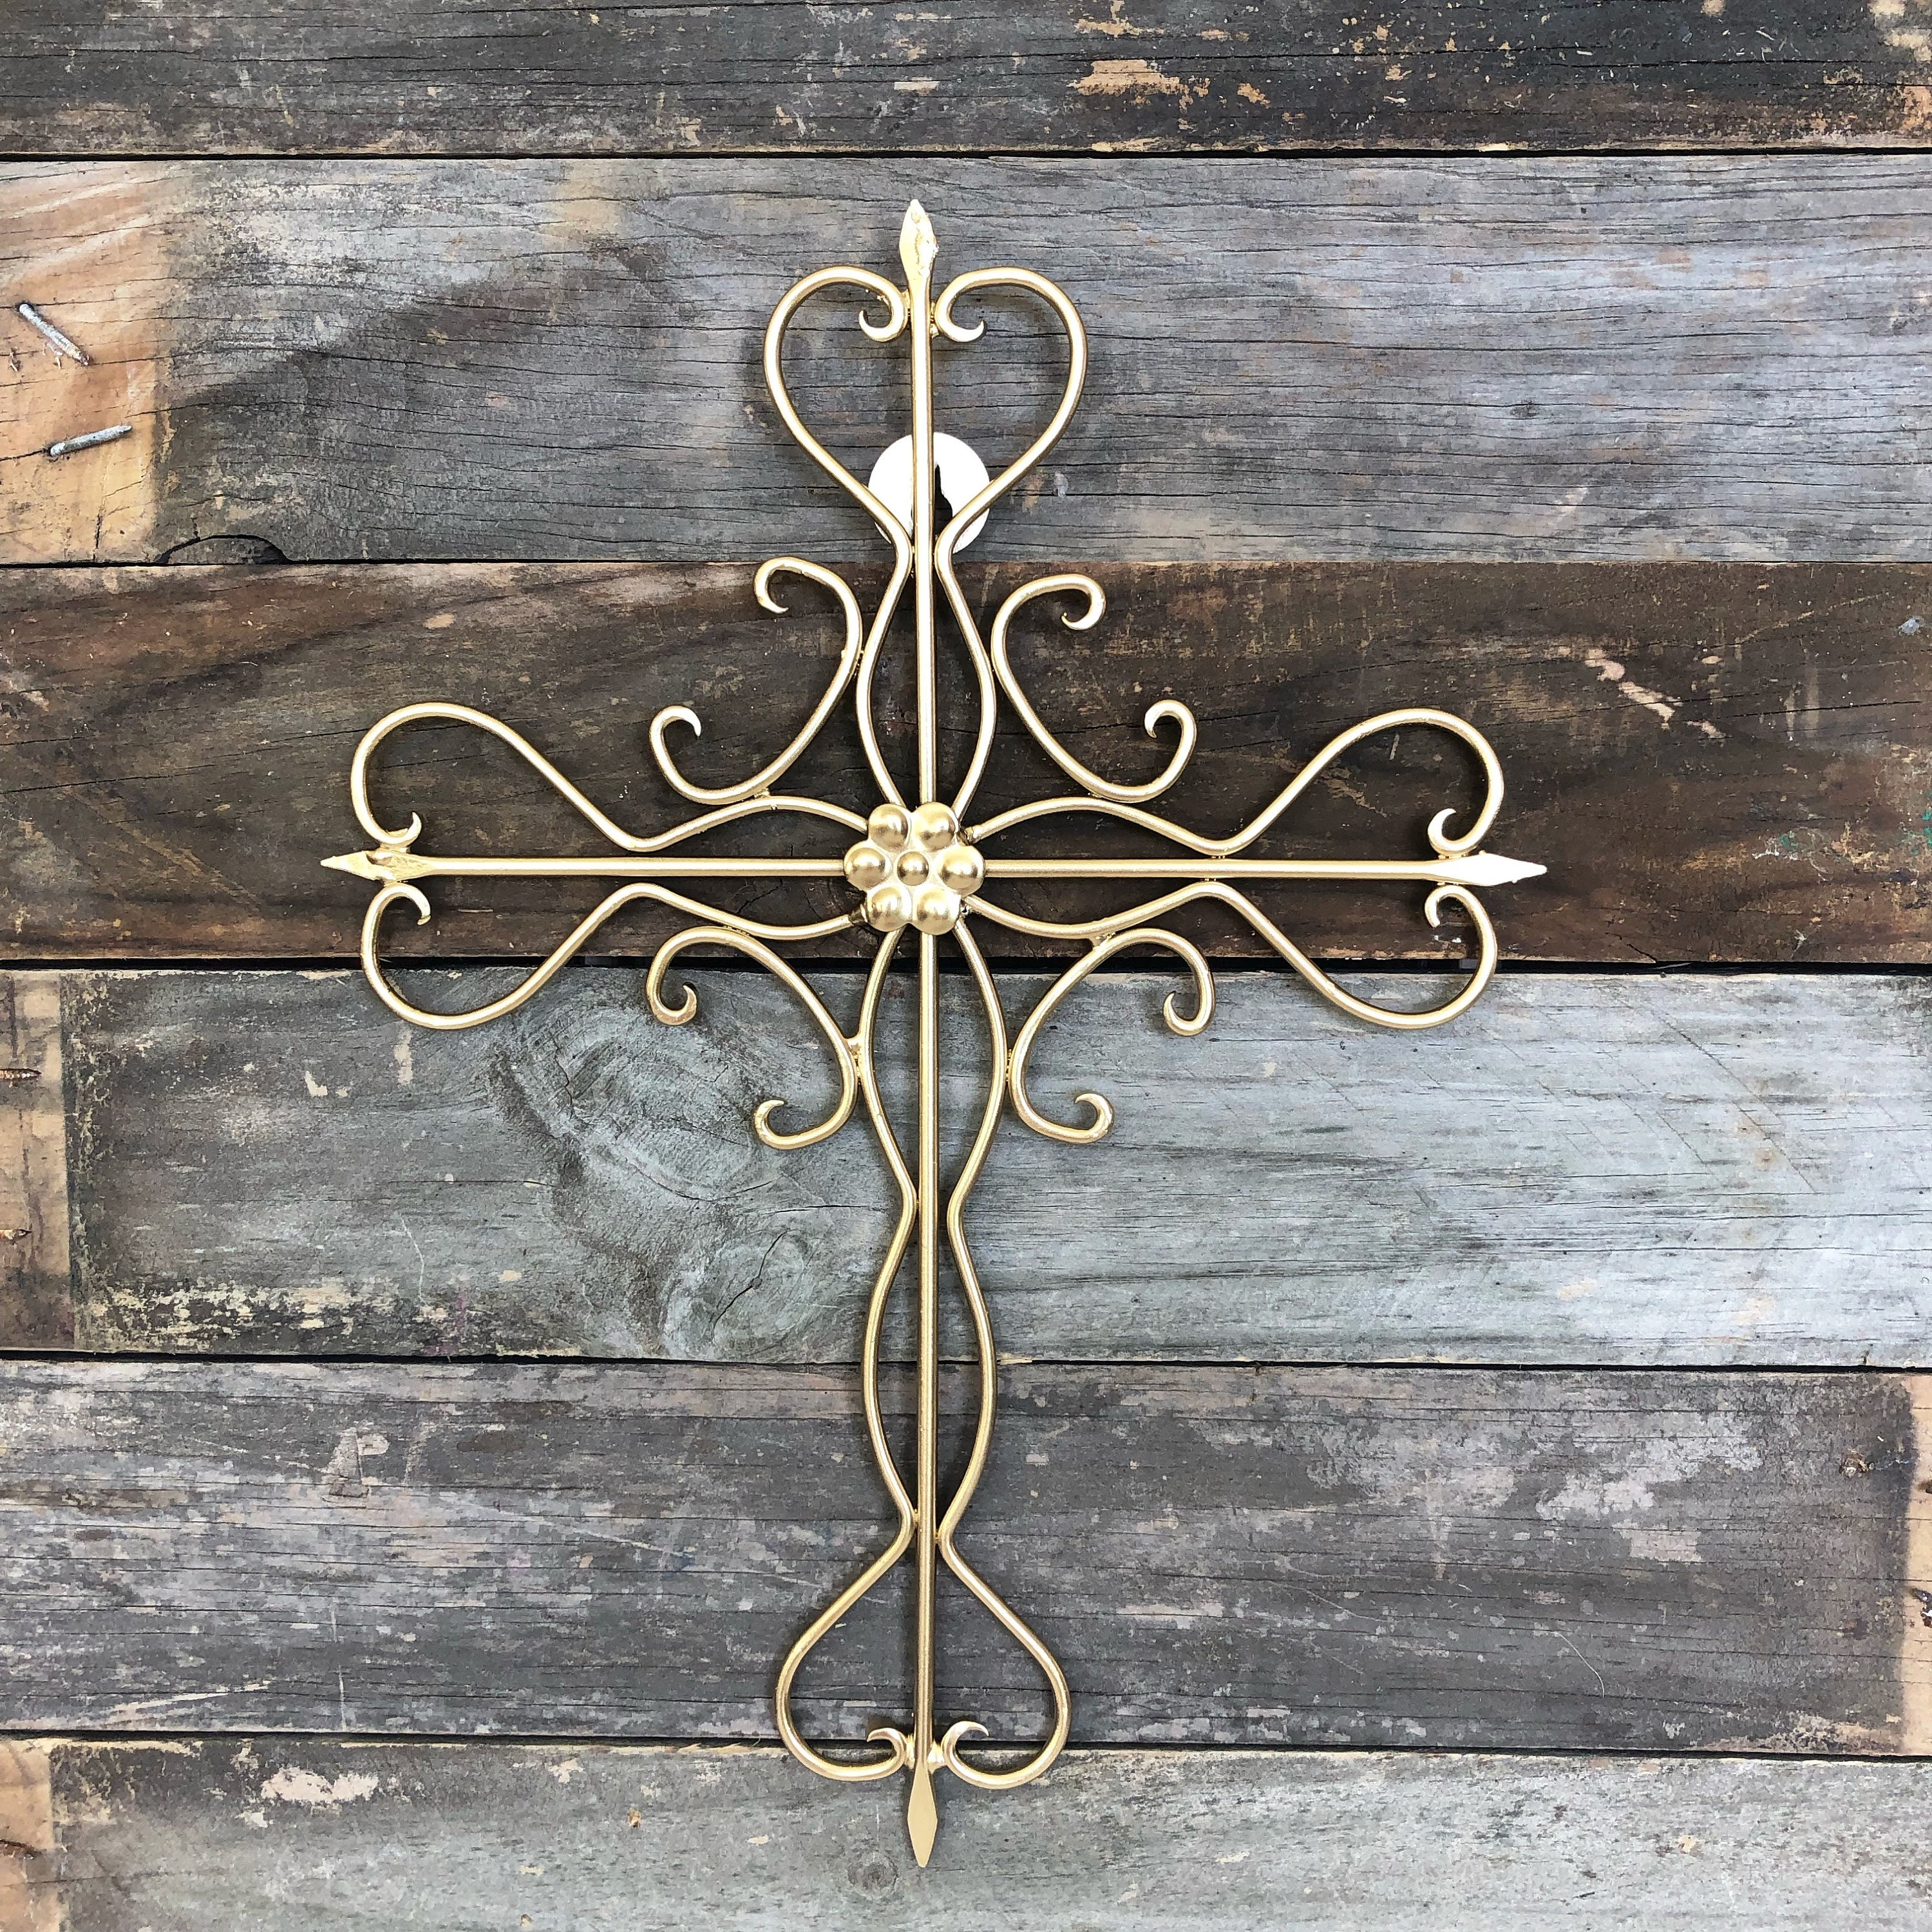 Cross Wall Hanging Ready To Ship Metal Wall Decor Metallic Gold Decorative Cross Gallery Wall Religious Gift Cross Wall Gold Wall